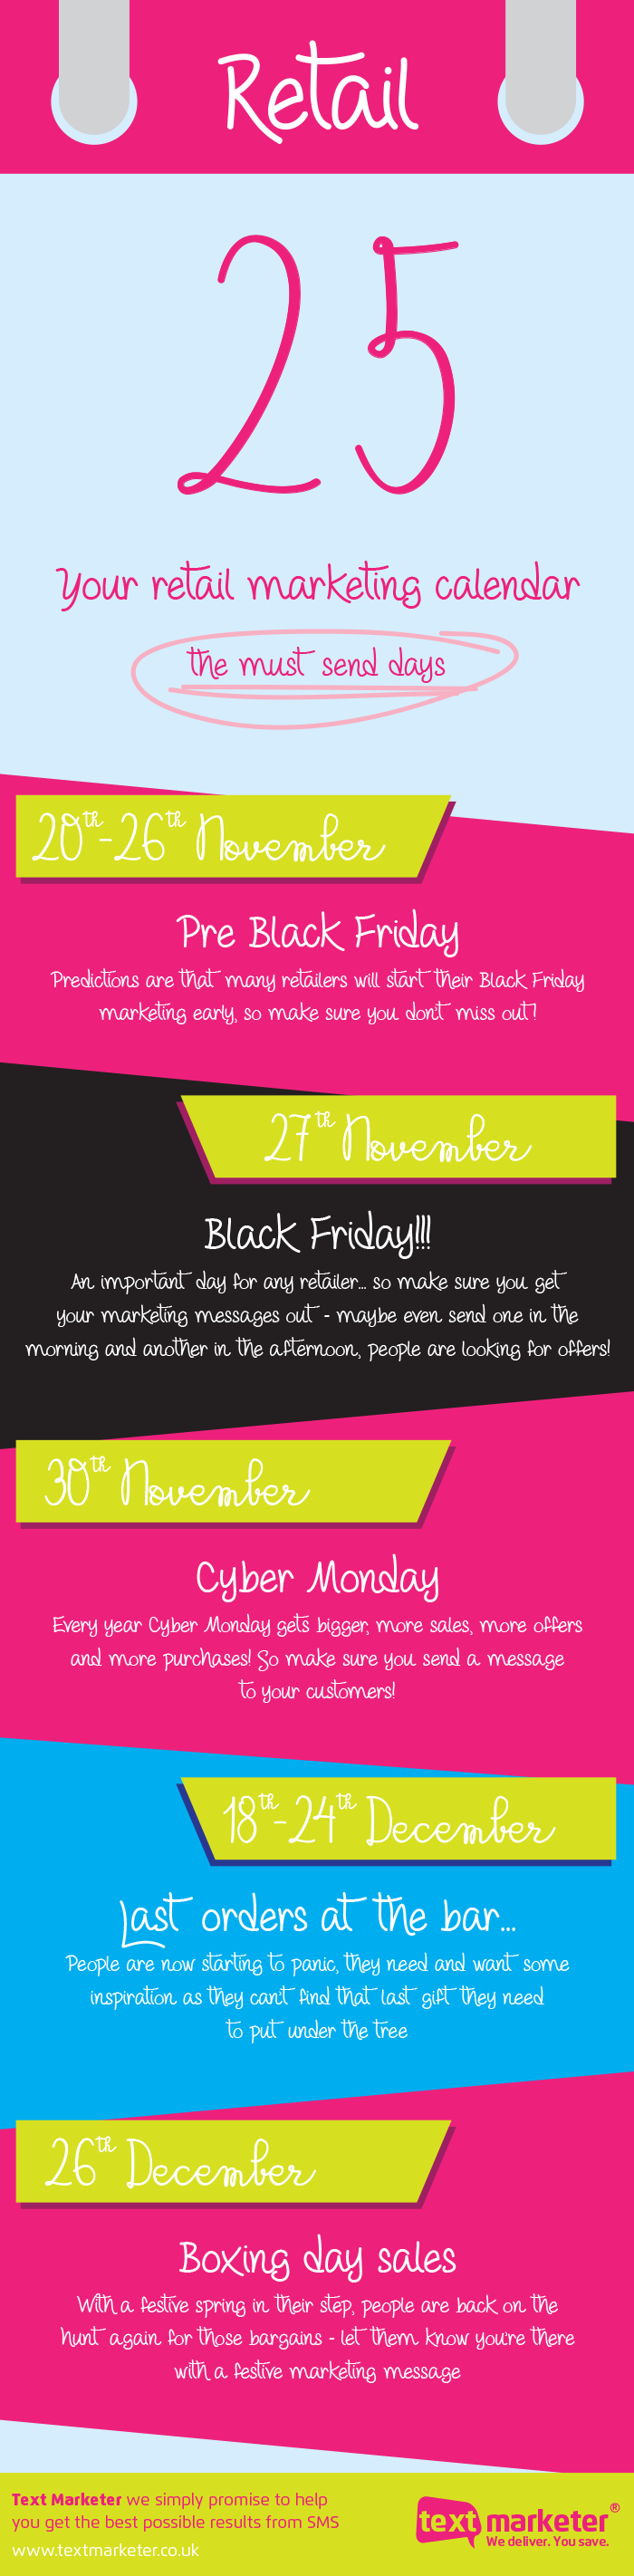 Your Retail Marketing Calendar #Infographic